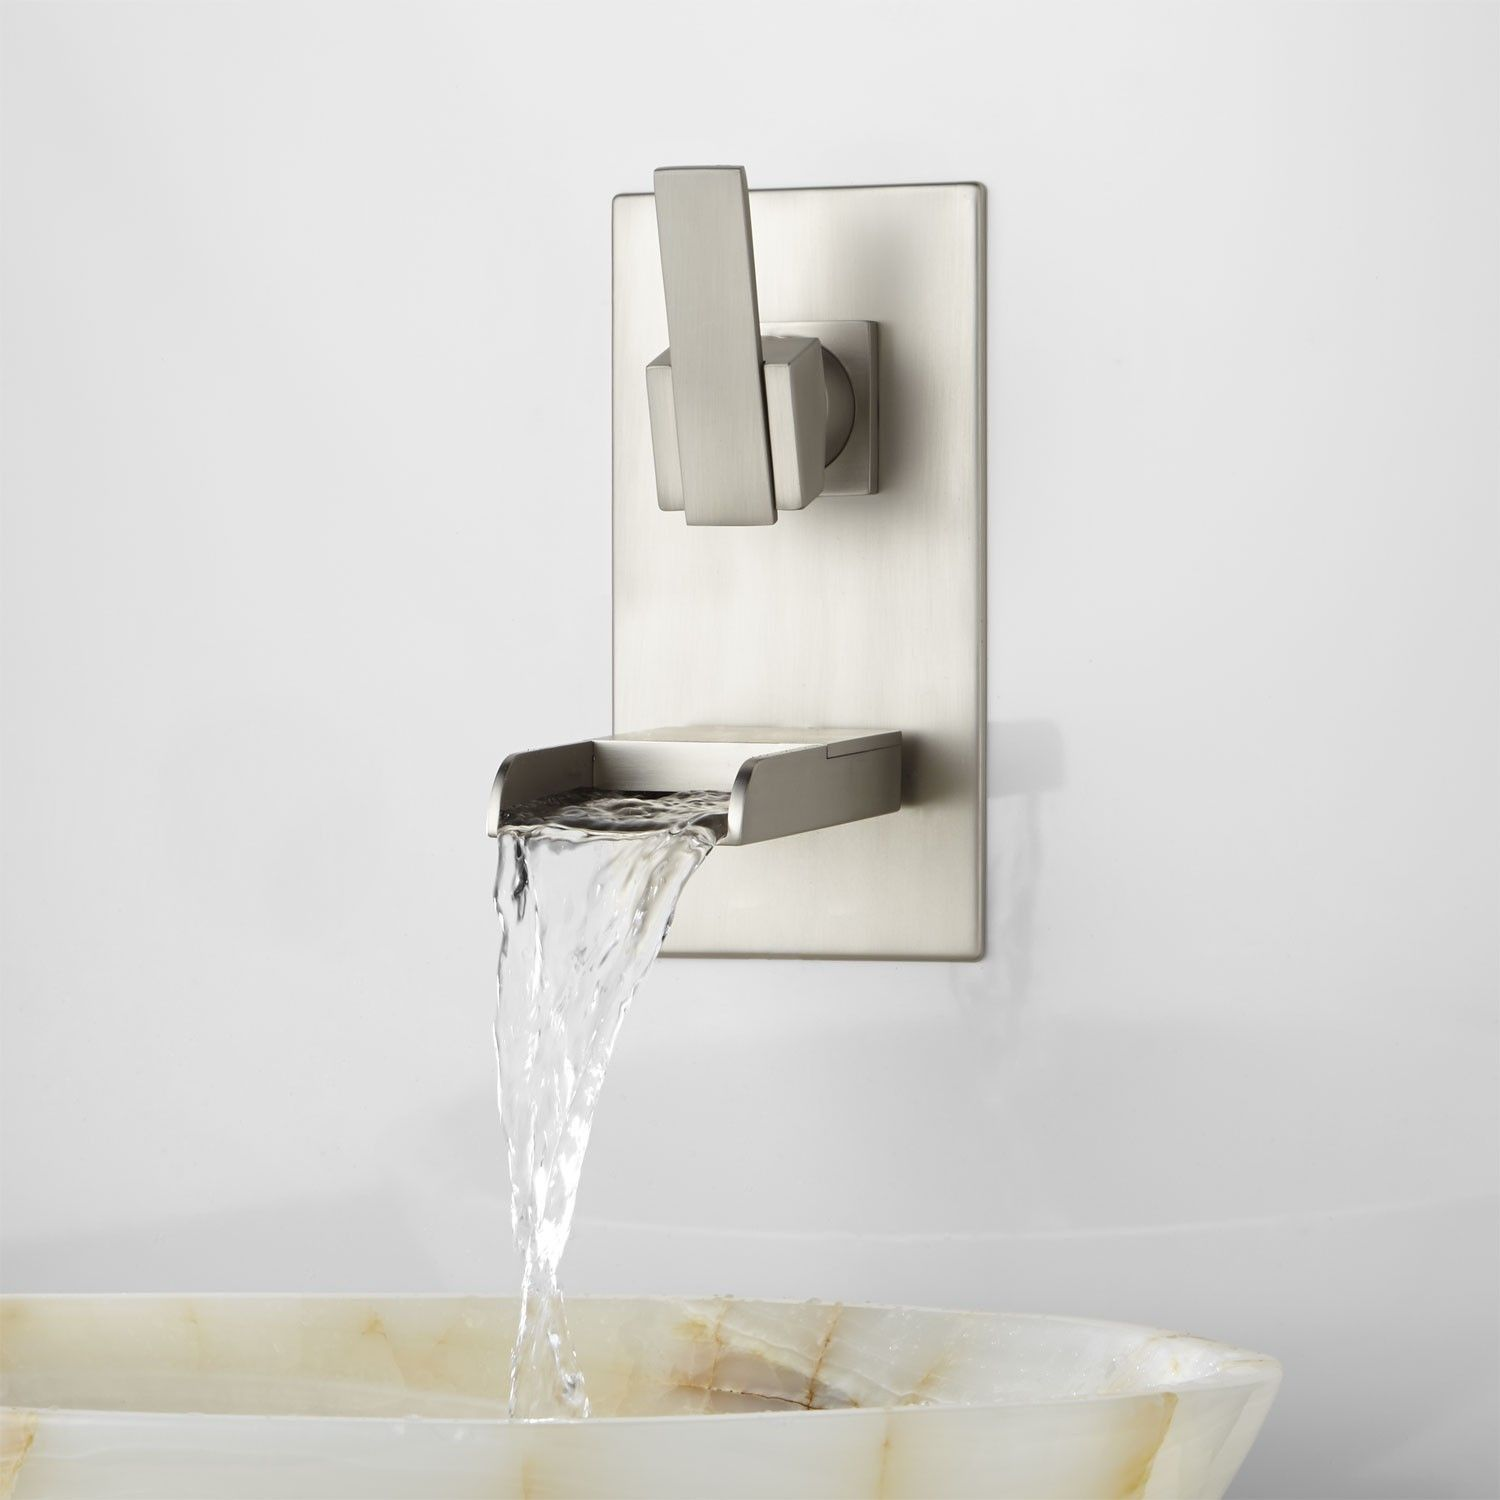 Willis Wall Mount Bathroom Waterfall Faucet